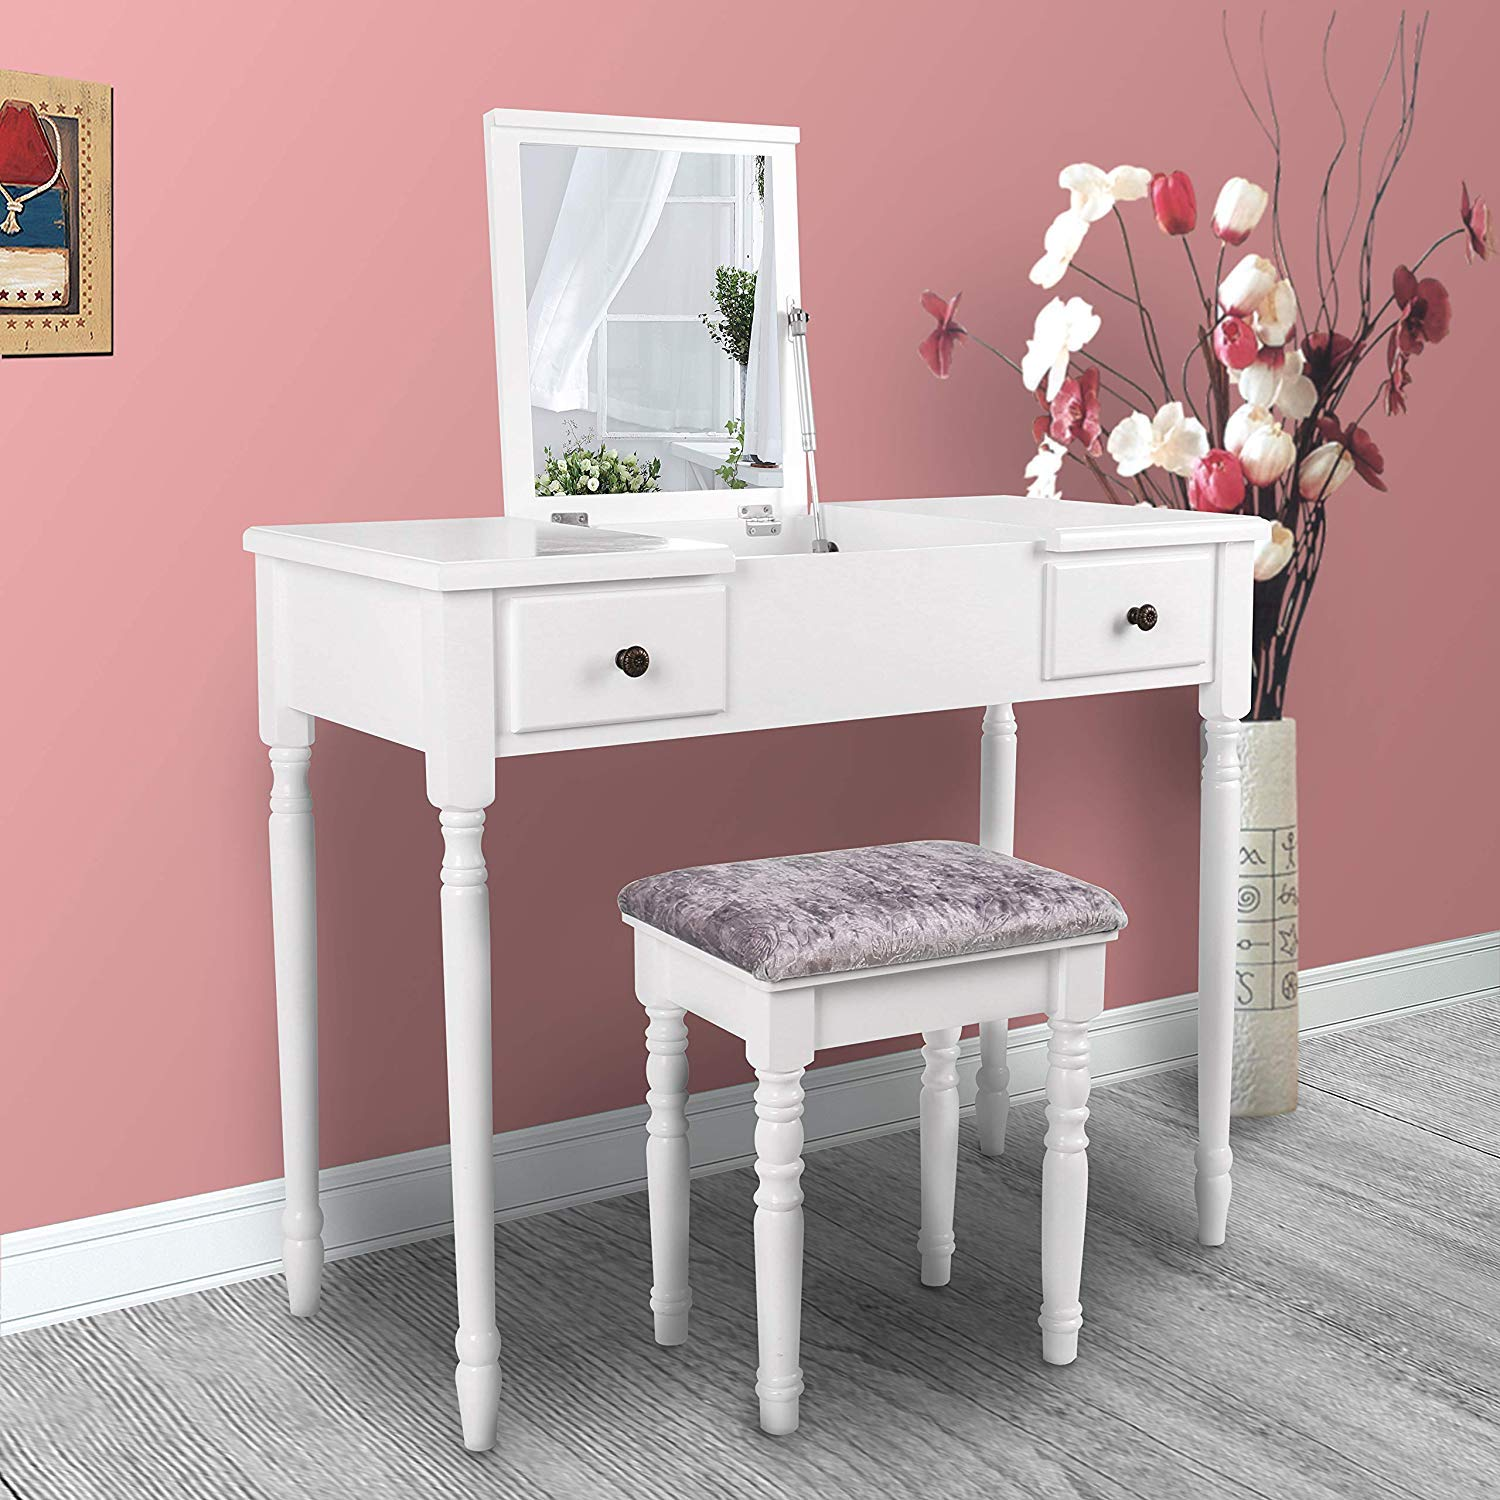 YOUKE Vanity Table with Flip Top Mirror Makeup Dressing Table Writing Desk with Cushioning Makeup Stool Set, 2 Drawers 3 Removable Organizers Easy Assembly (White) by YOUKE